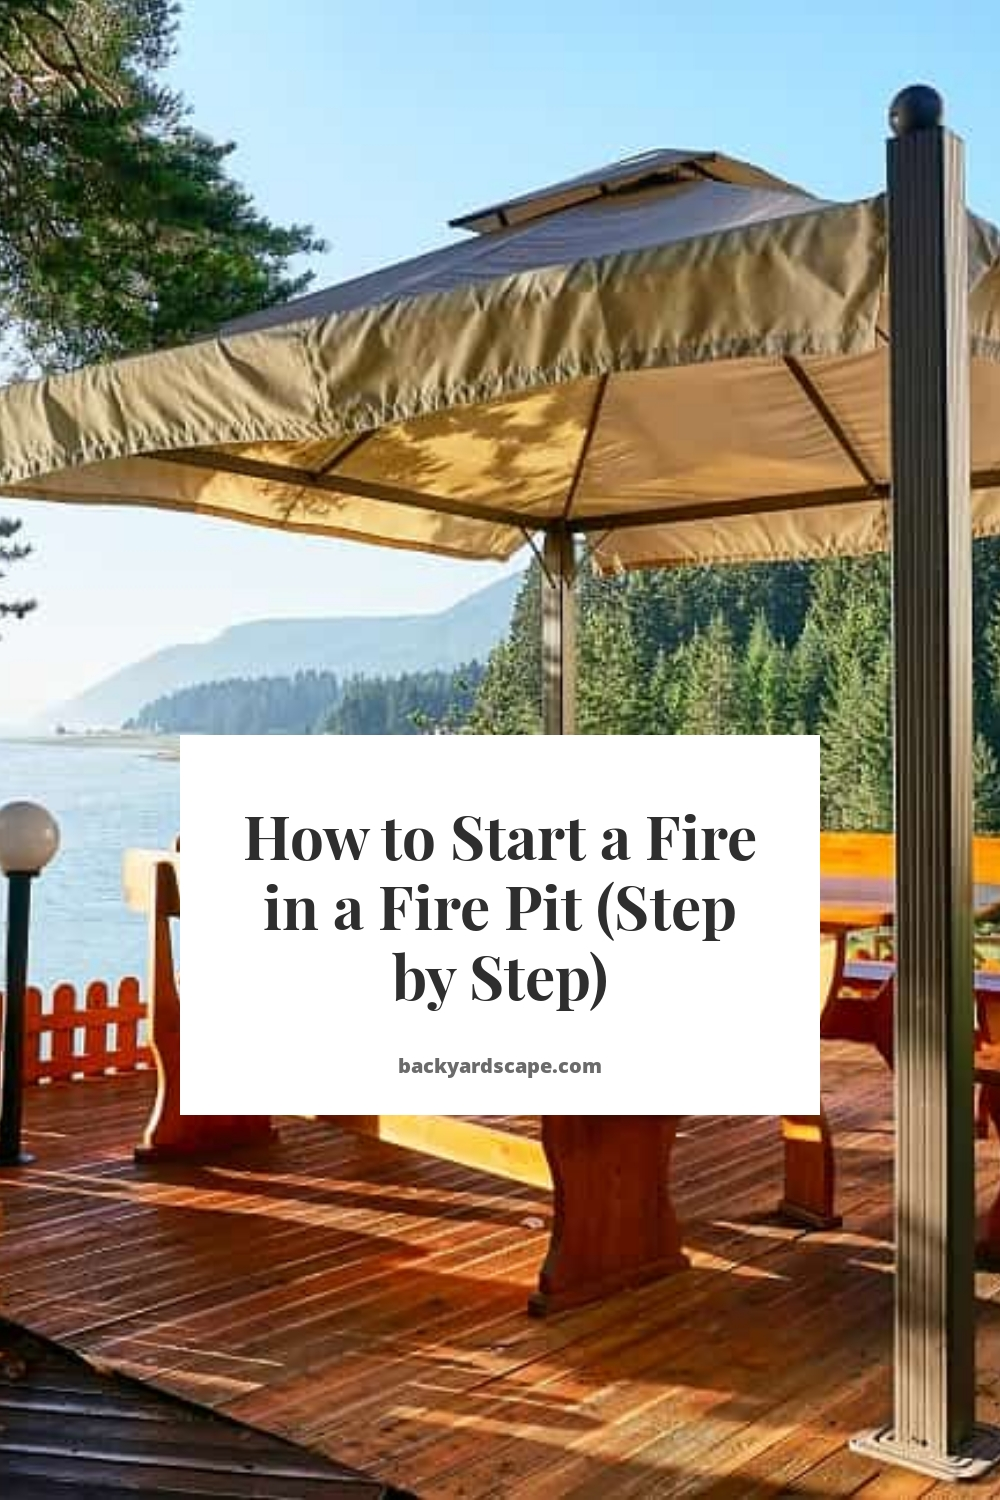 How to Start a Fire in a Fire Pit (Step by Step)